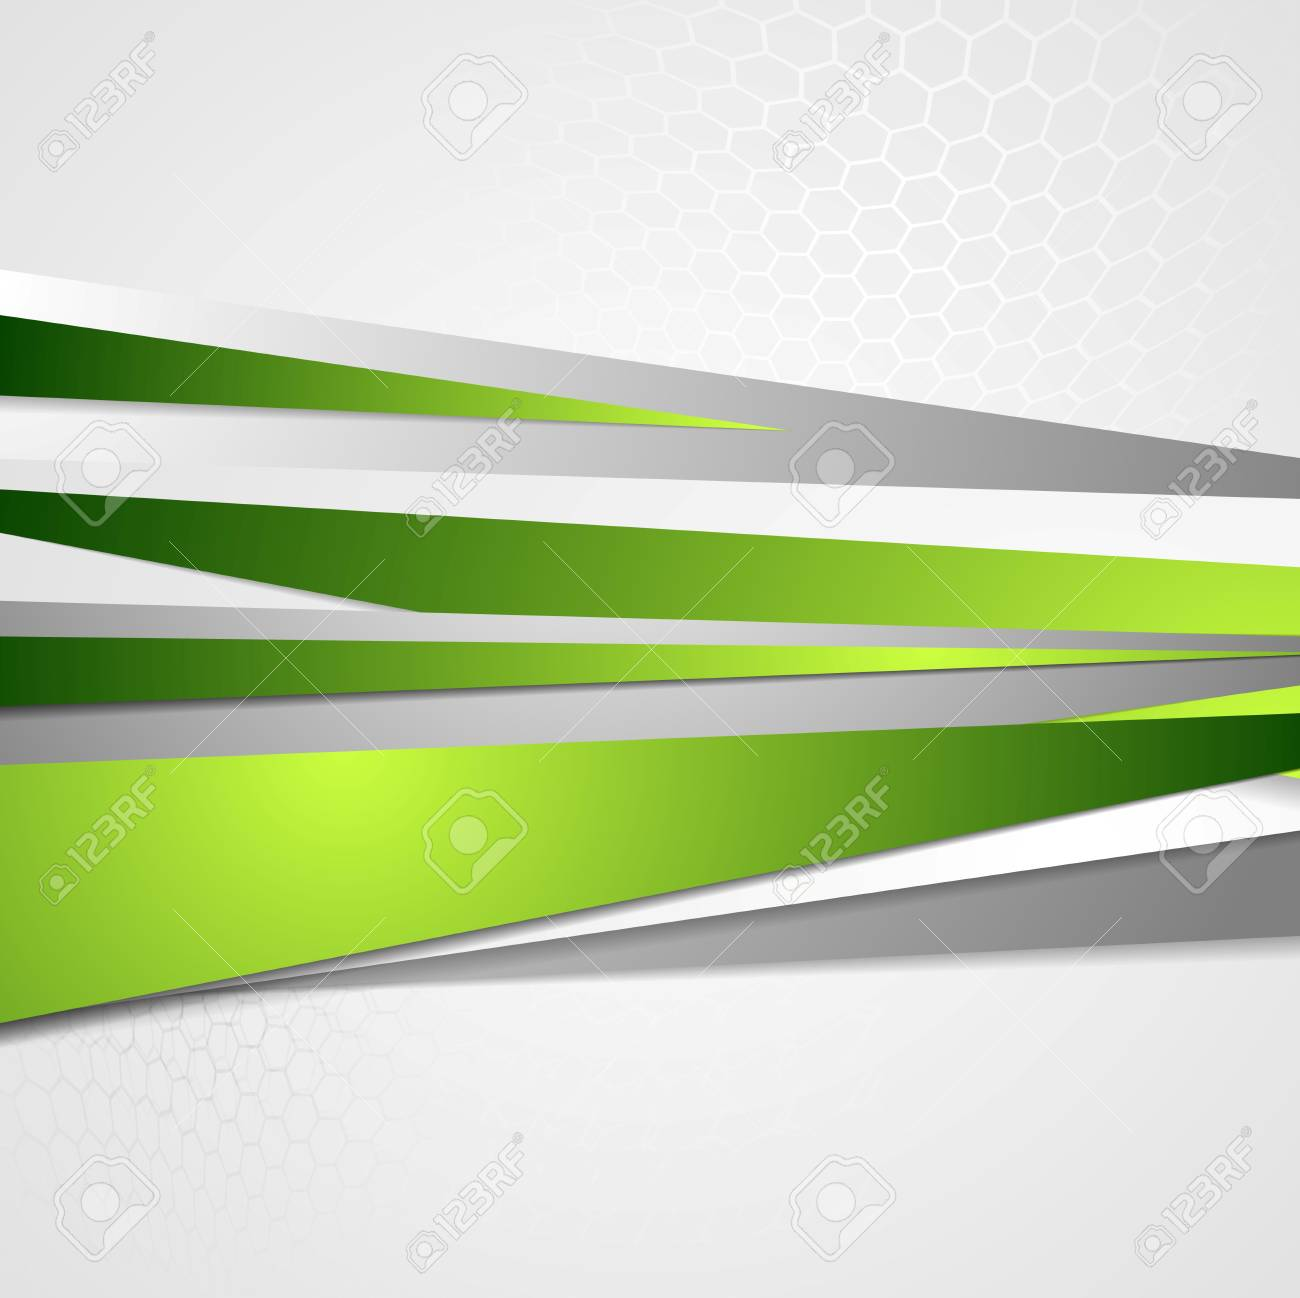 Corporate Graphic Design Abstract Green Grey Corporate Graphic Design Vector Background